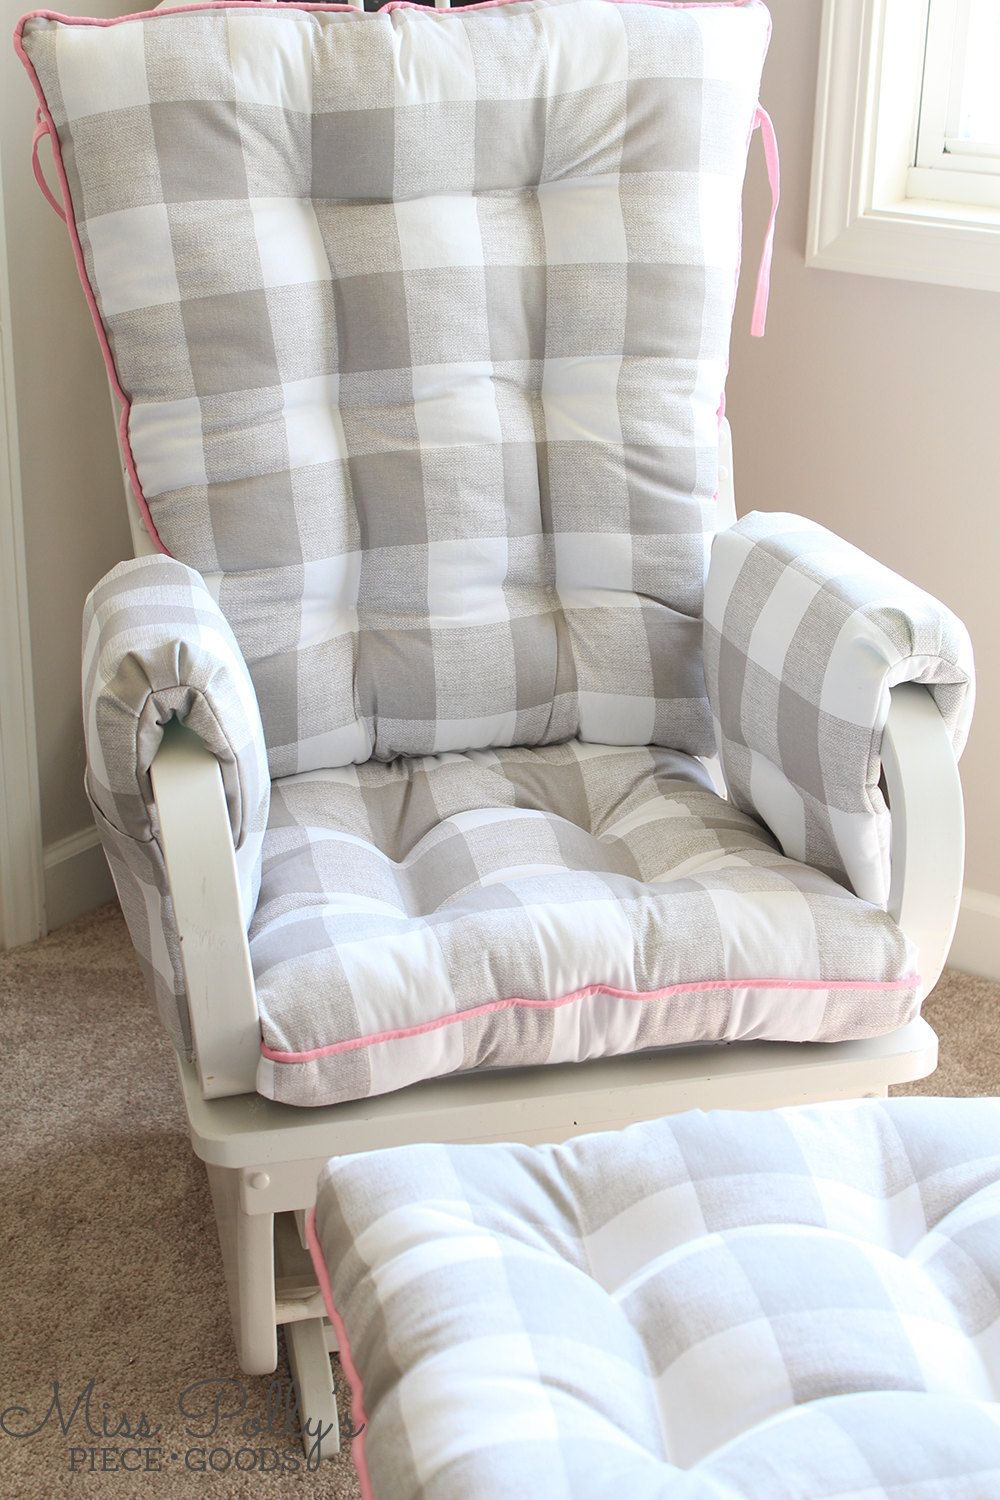 Glider Or Rocking Chair Cushions In Fabrics You Choose Are A Great Finishing Touch To The W Glider Rocker Cushions Rocking Chair Cushions Rocking Chair Nursery